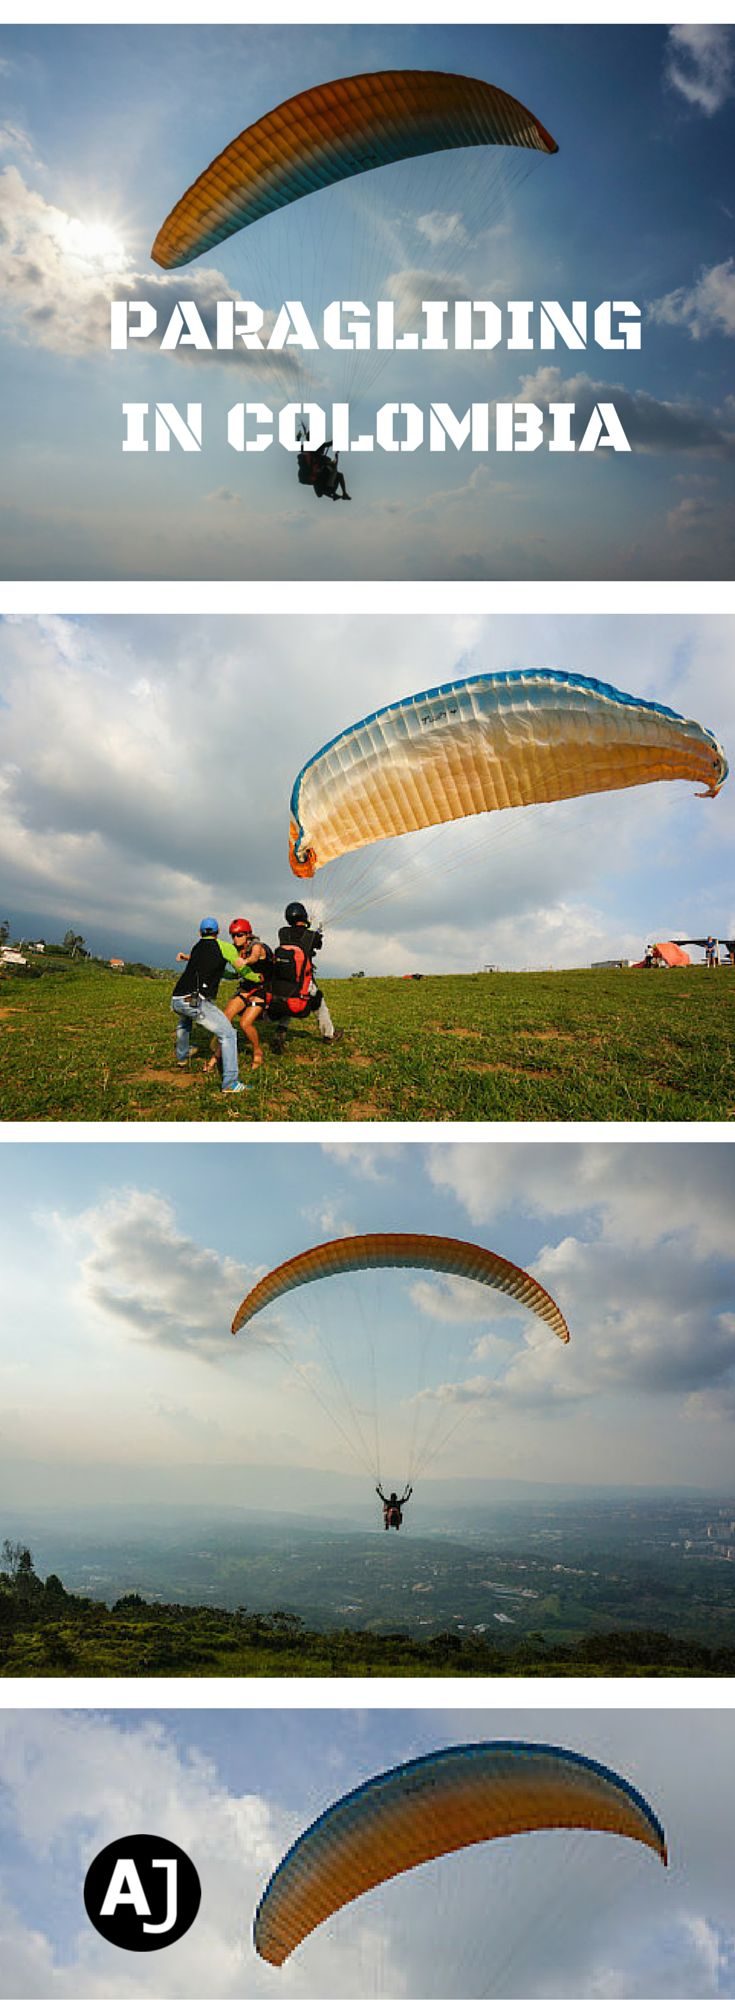 Paragliding is a technical sport that requires training and study to fly solo but is made accessible to everyone through tandem flights.